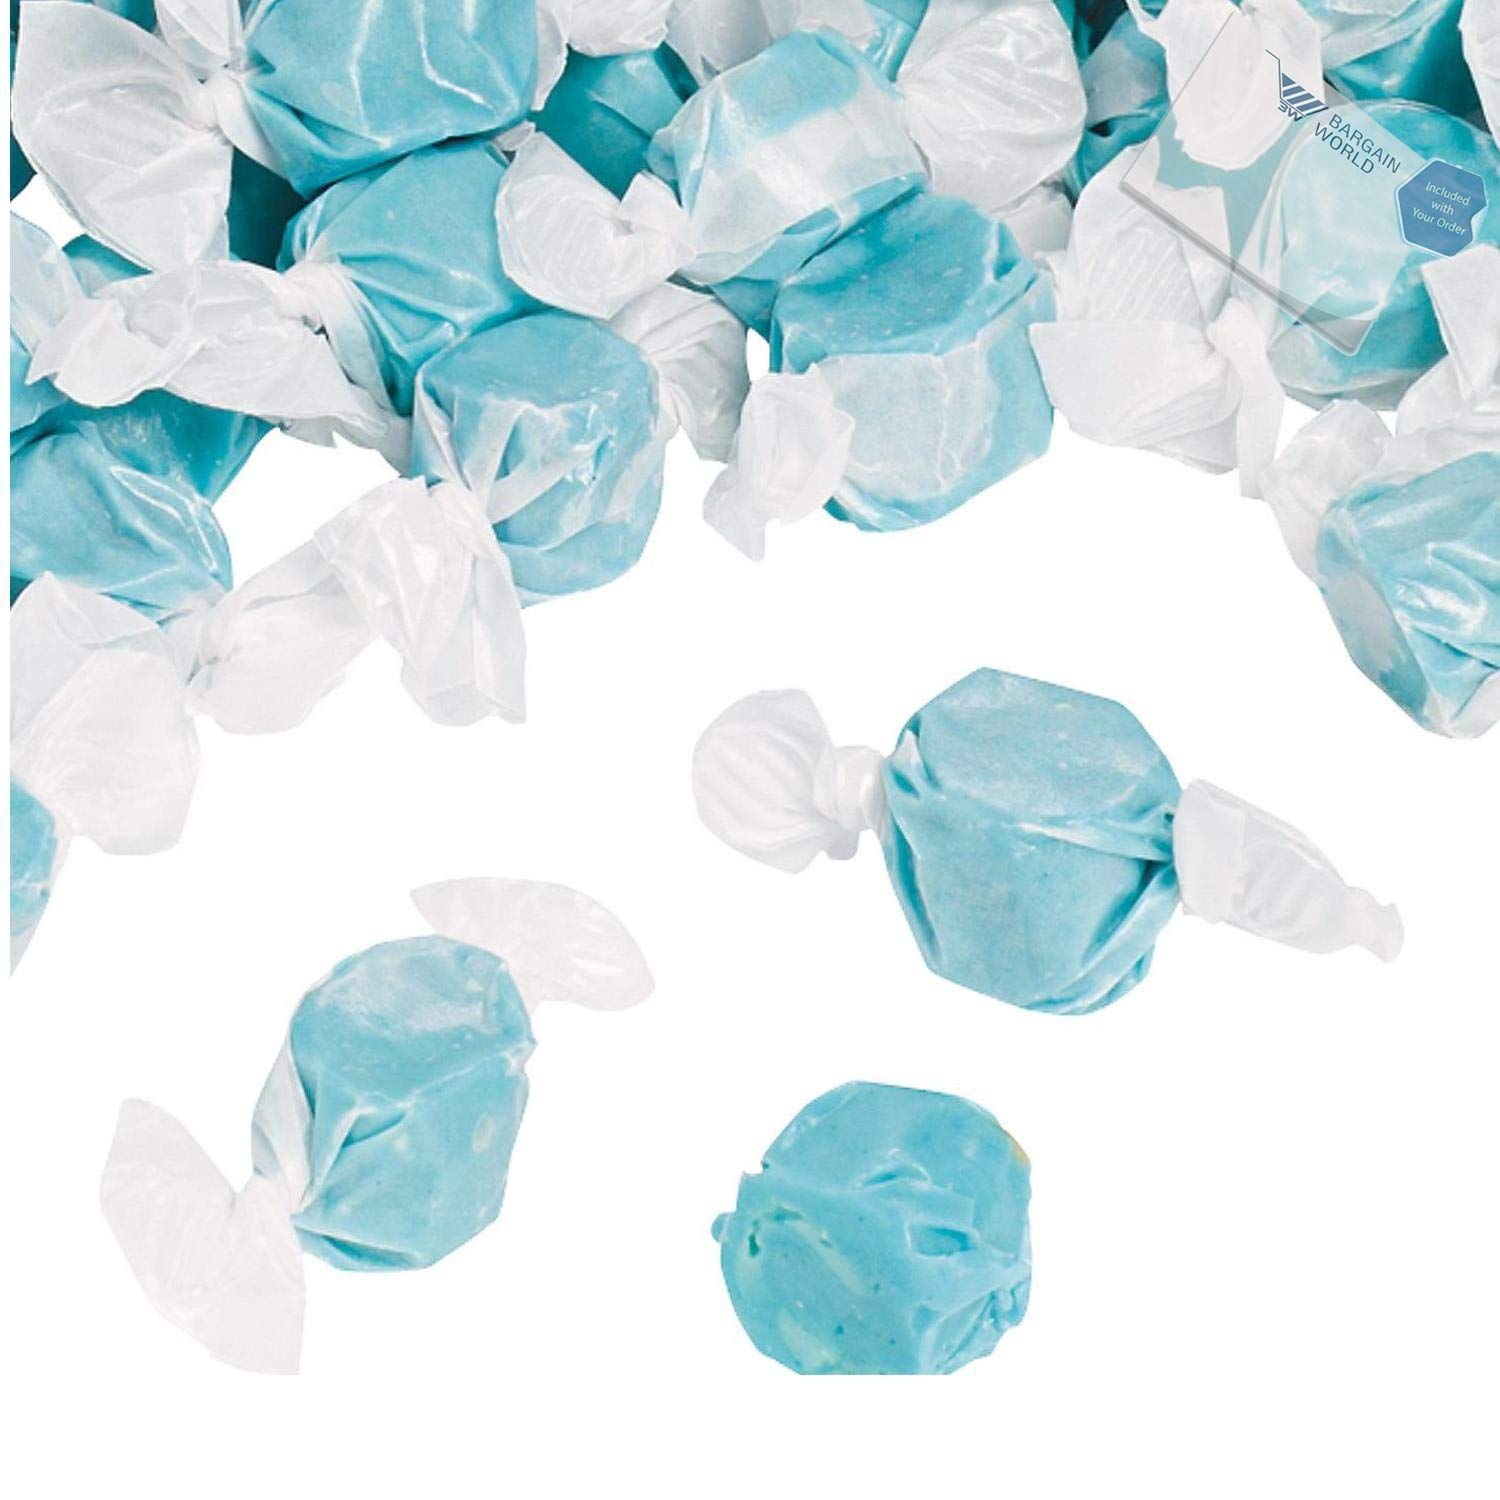 Bargain World Blue Salt Water Taffy (With Sticky Notes)